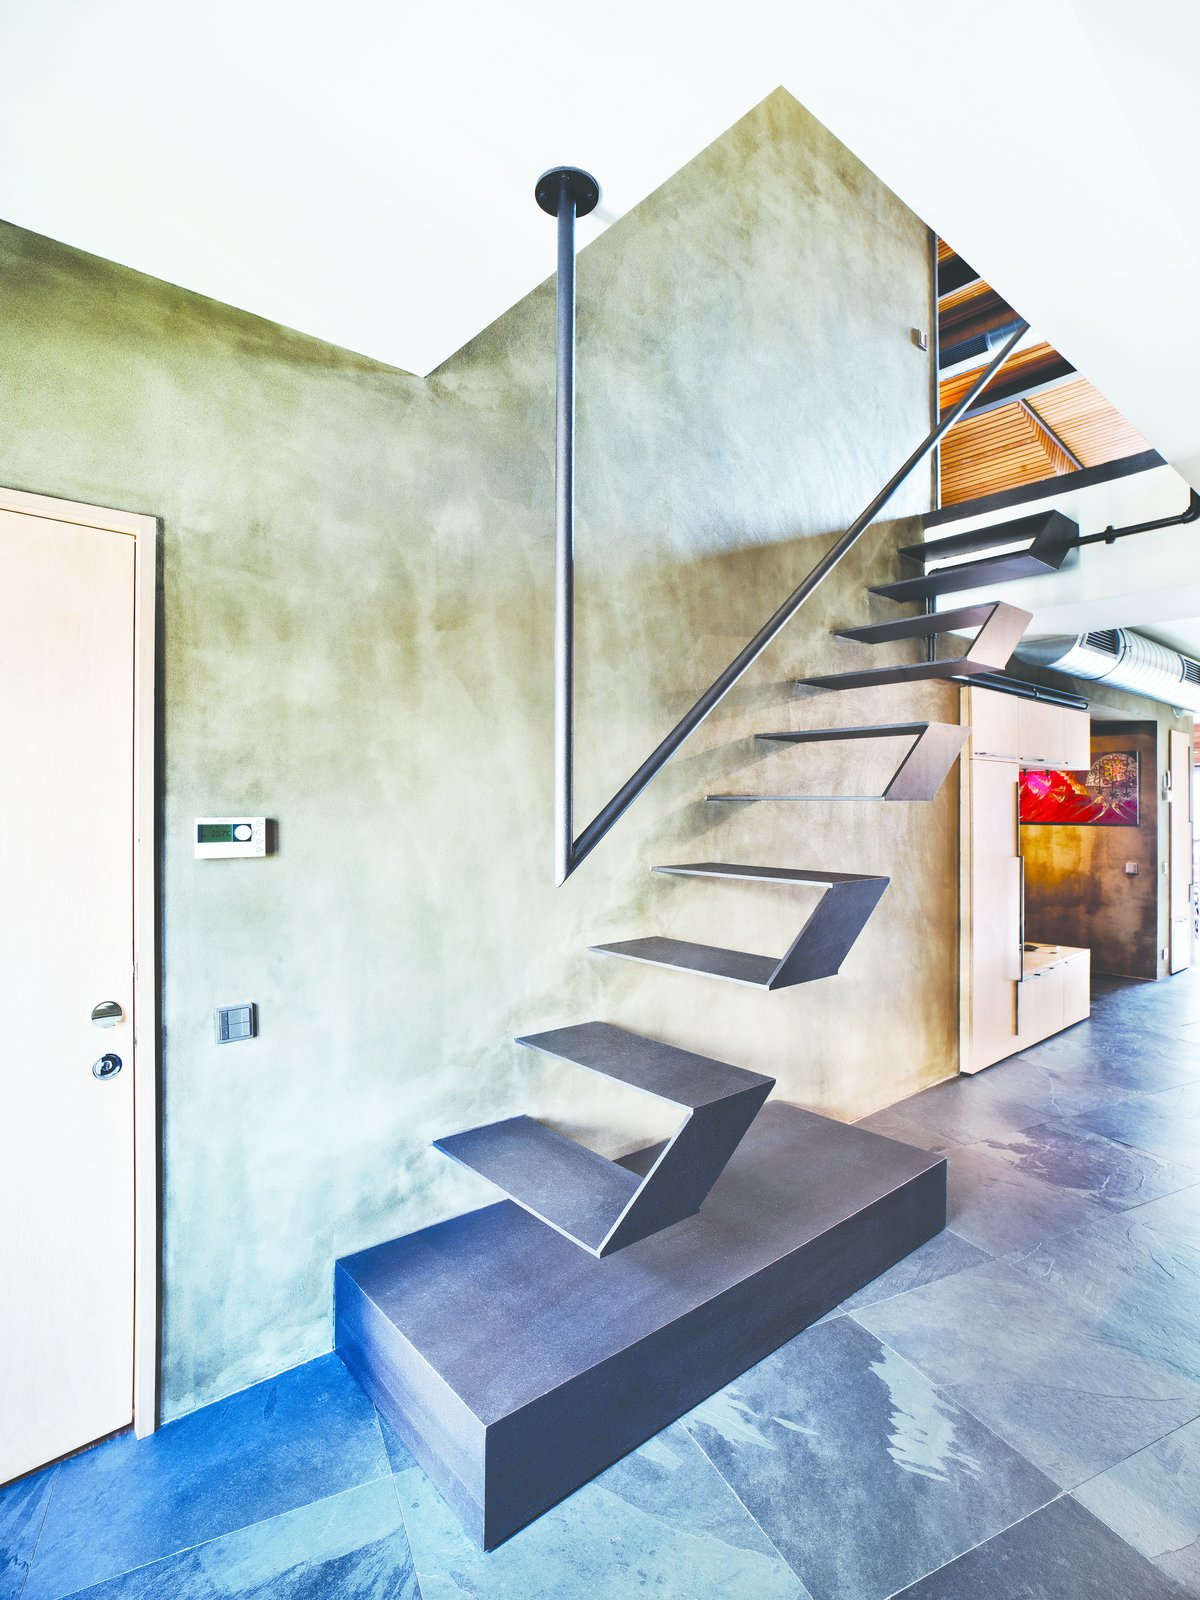 Futuristic floating stairs lead to the loft's mezzanine. Throughout the lower level, natural stone was chosen for the flooring, laid at an irregular angle to add visual interest. Tagged: Staircase, Metal Railing, and Metal Tread.  Loft by Paolo Rivera from A Single-Room Loft with Impressive Wall-to-Wall Storage